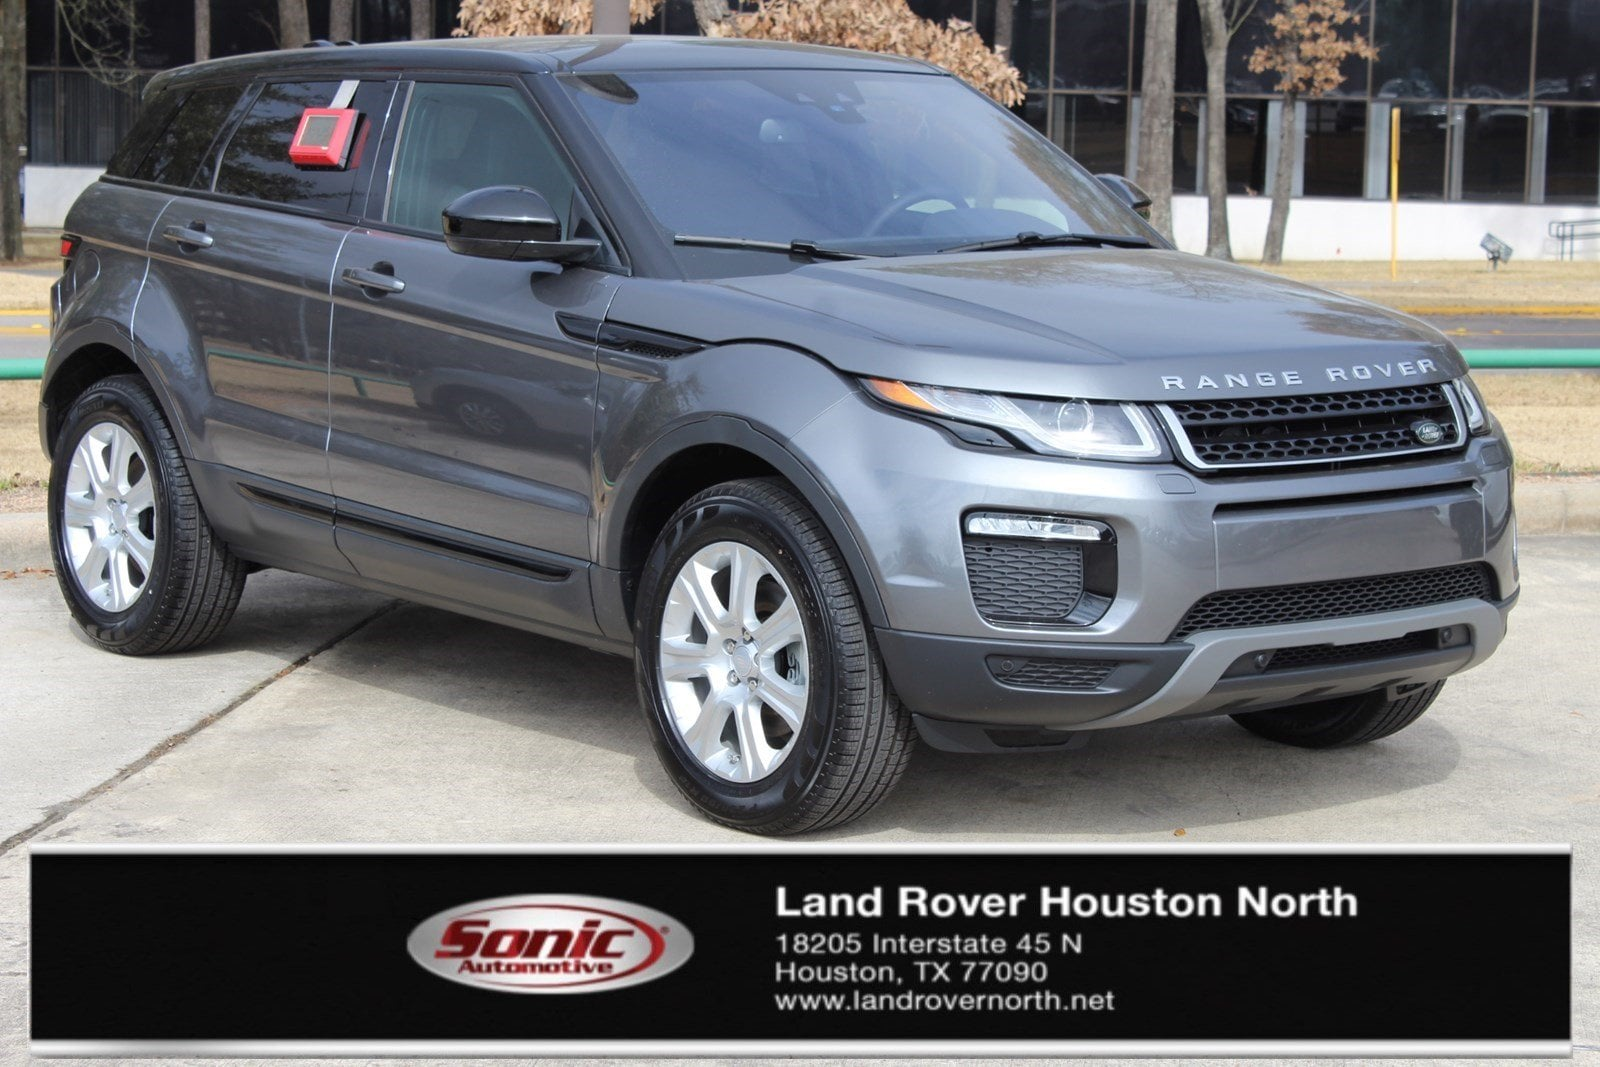 hight resolution of land rover houston north